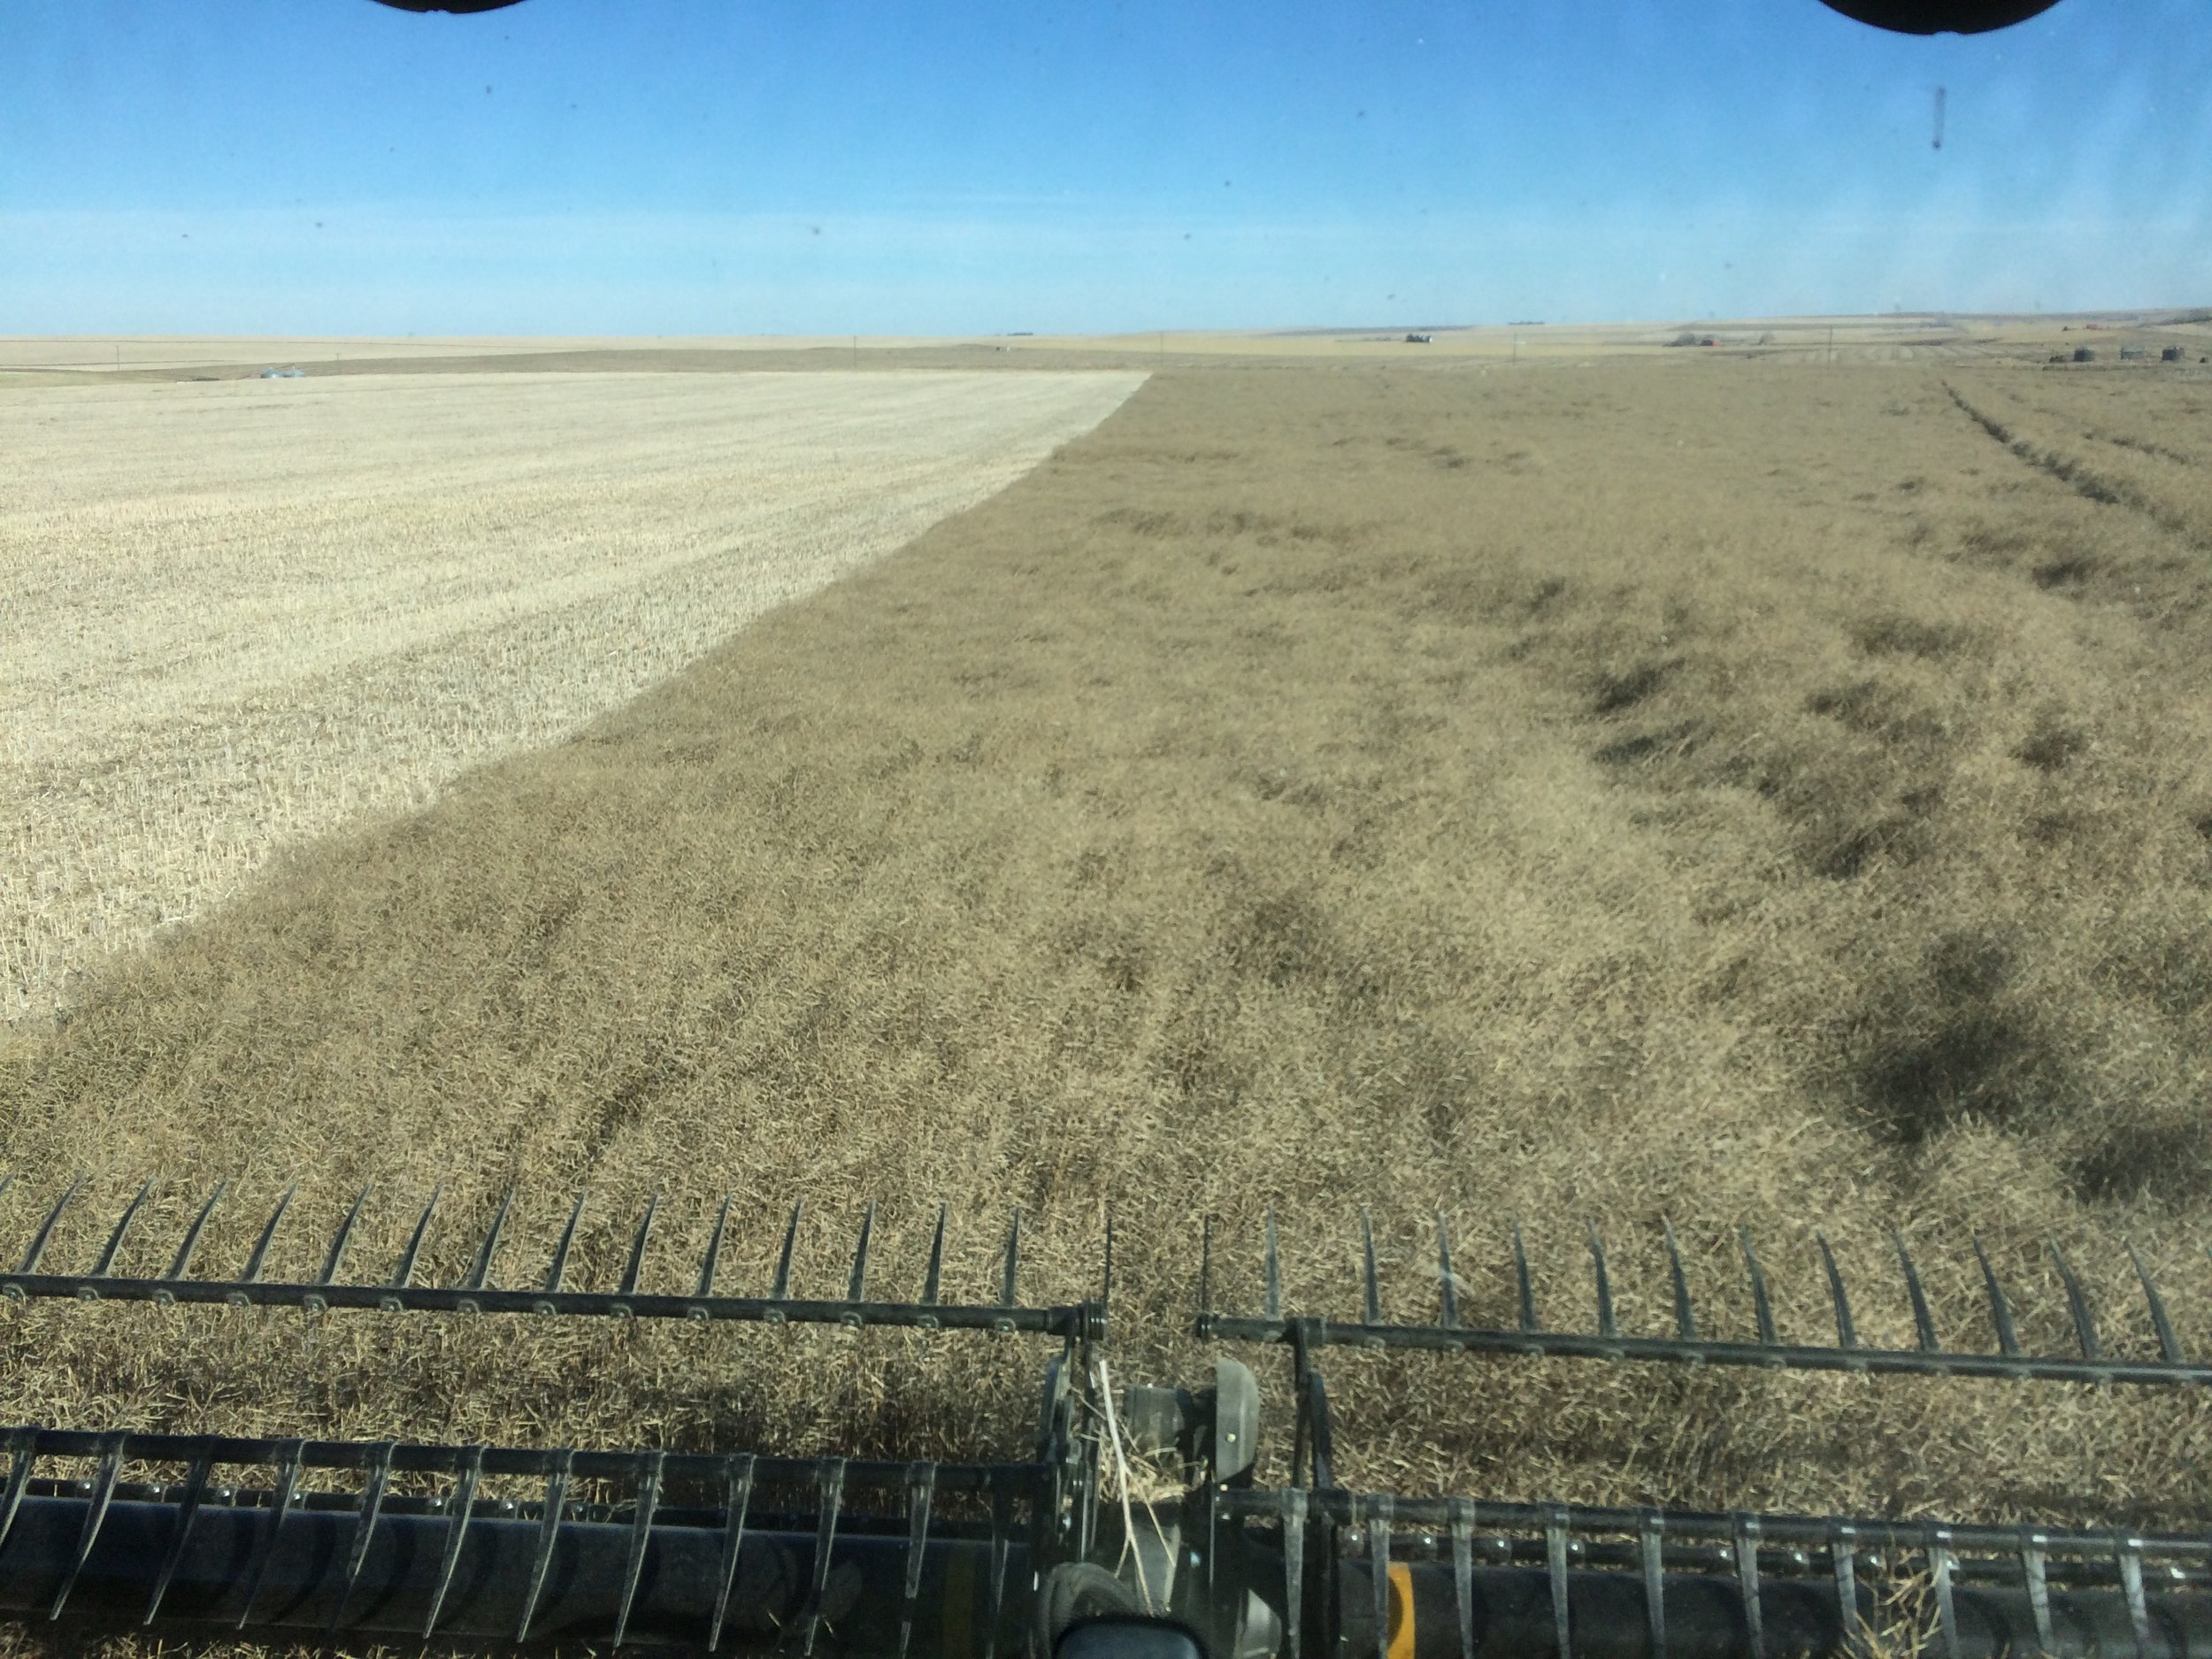 Harvesting canola at Three Hills, AB (November 2018)